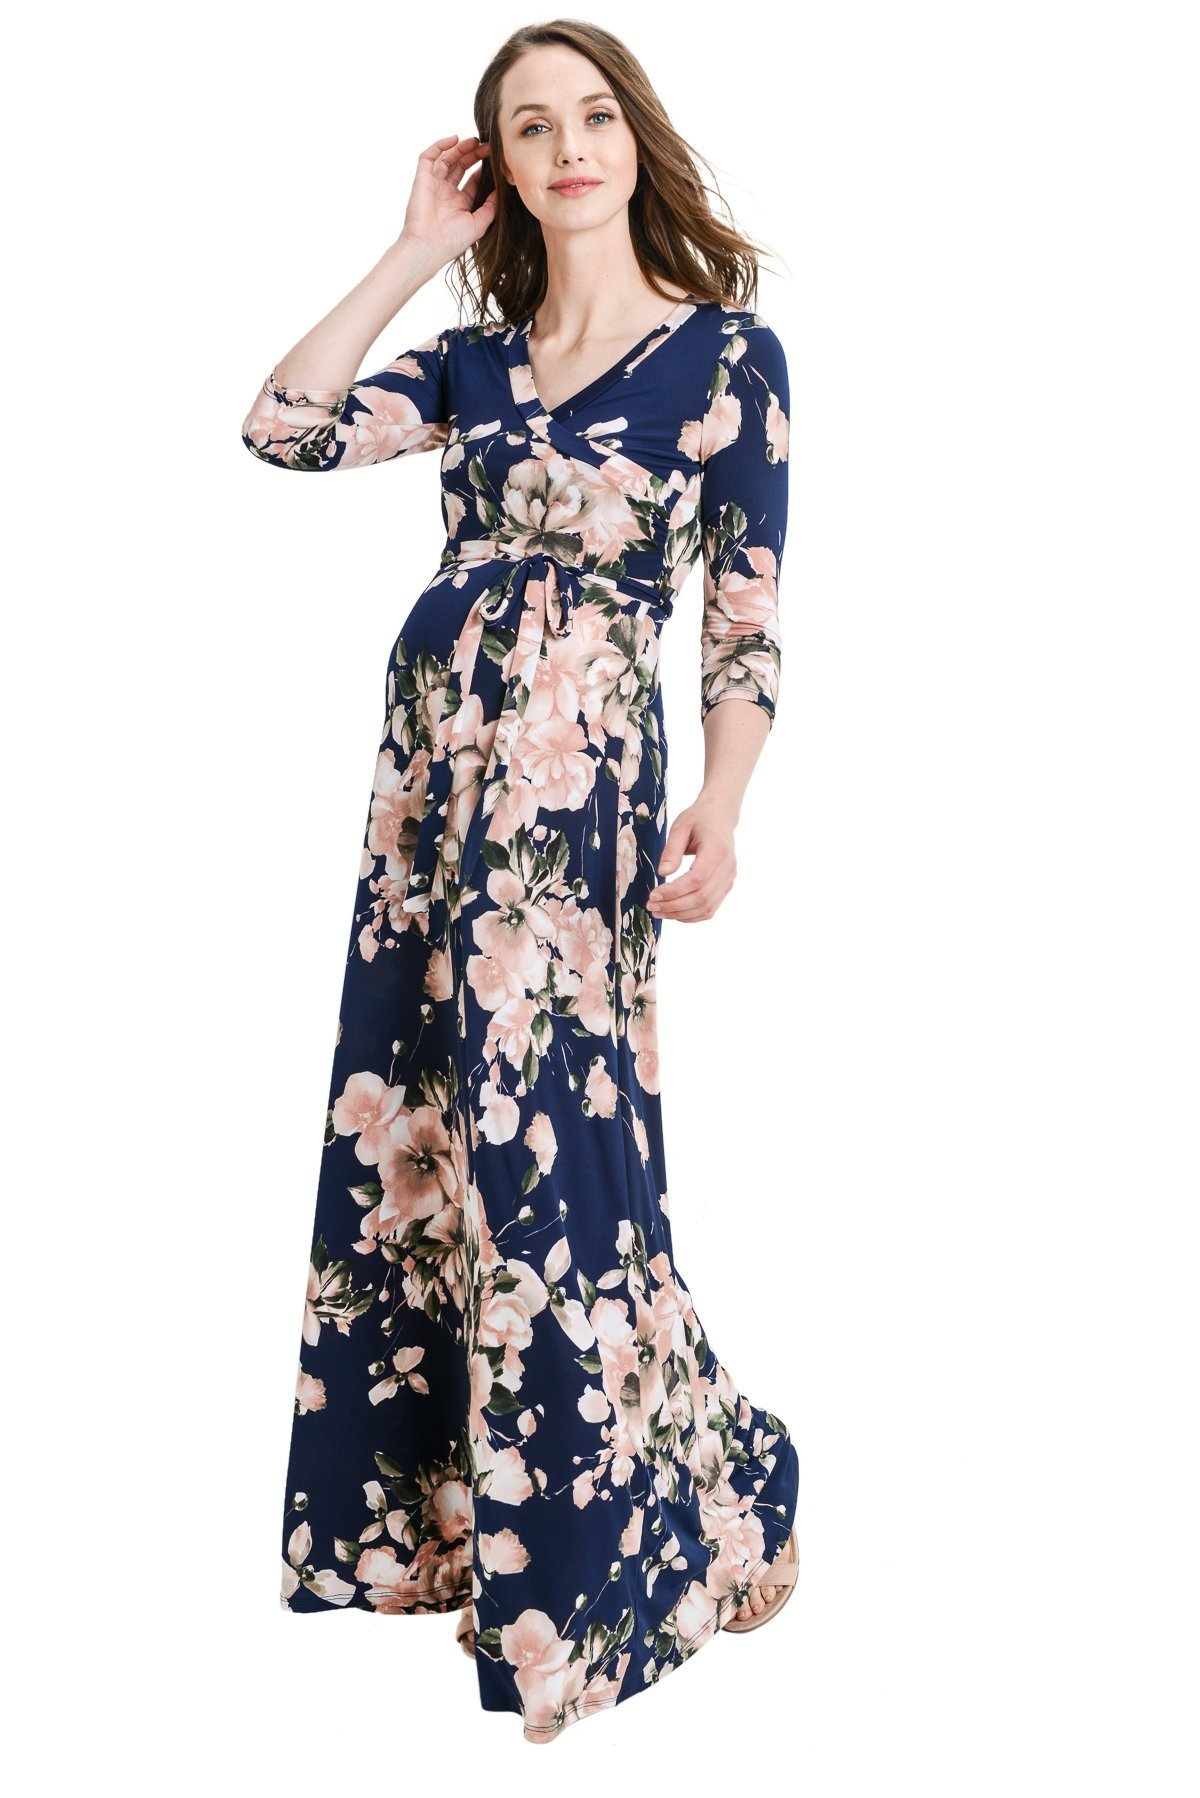 Hello MIZ Women's Faux Wrap Maxi Maternity Dress with Belt - Made in USA (Dark Navy/Blush, L)